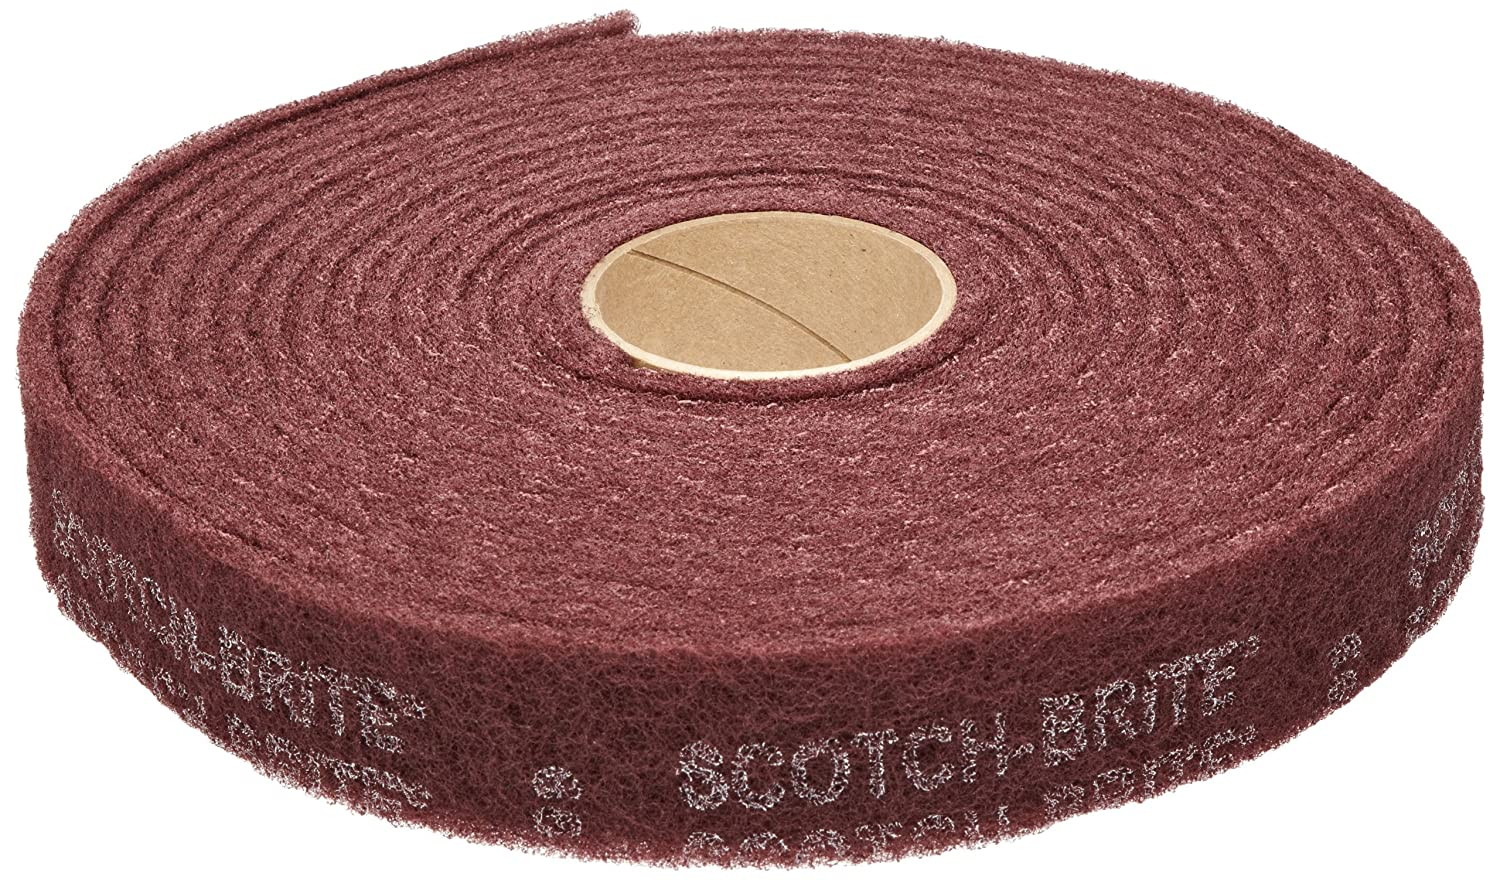 VSM Abrasives 1-1//2 X 50 Yard 220 Grit Aluminum Oxide Cloth Roll F Weighted Backing Very Fine Grade